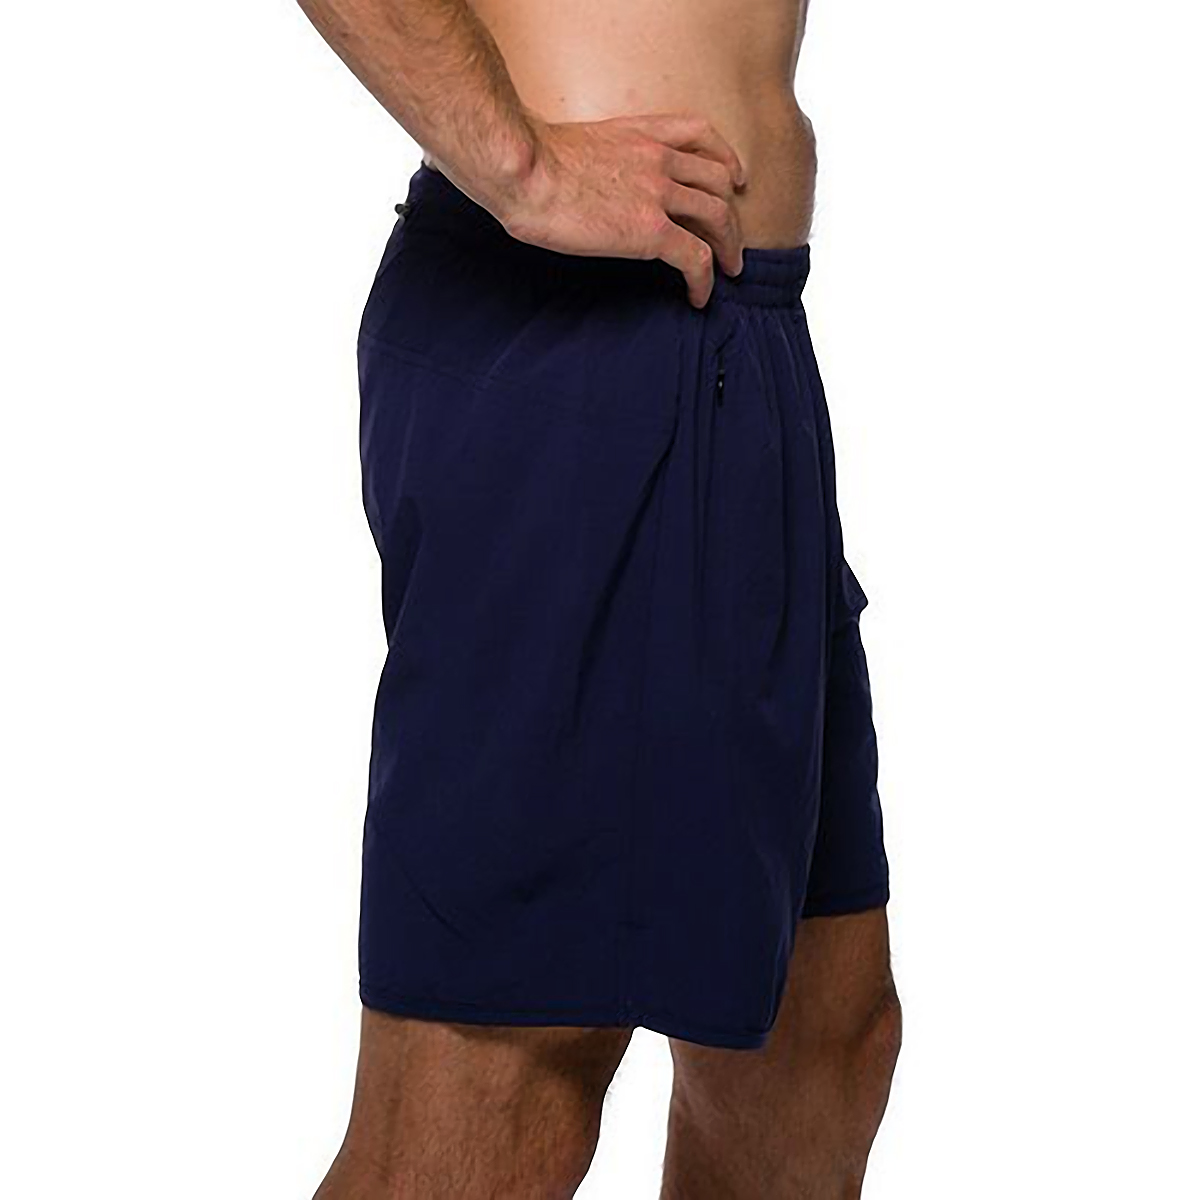 Men's Rabbit Fully Re-Loaded 7'' Short - Color: Eclipse - Size: S, Eclipse, large, image 3